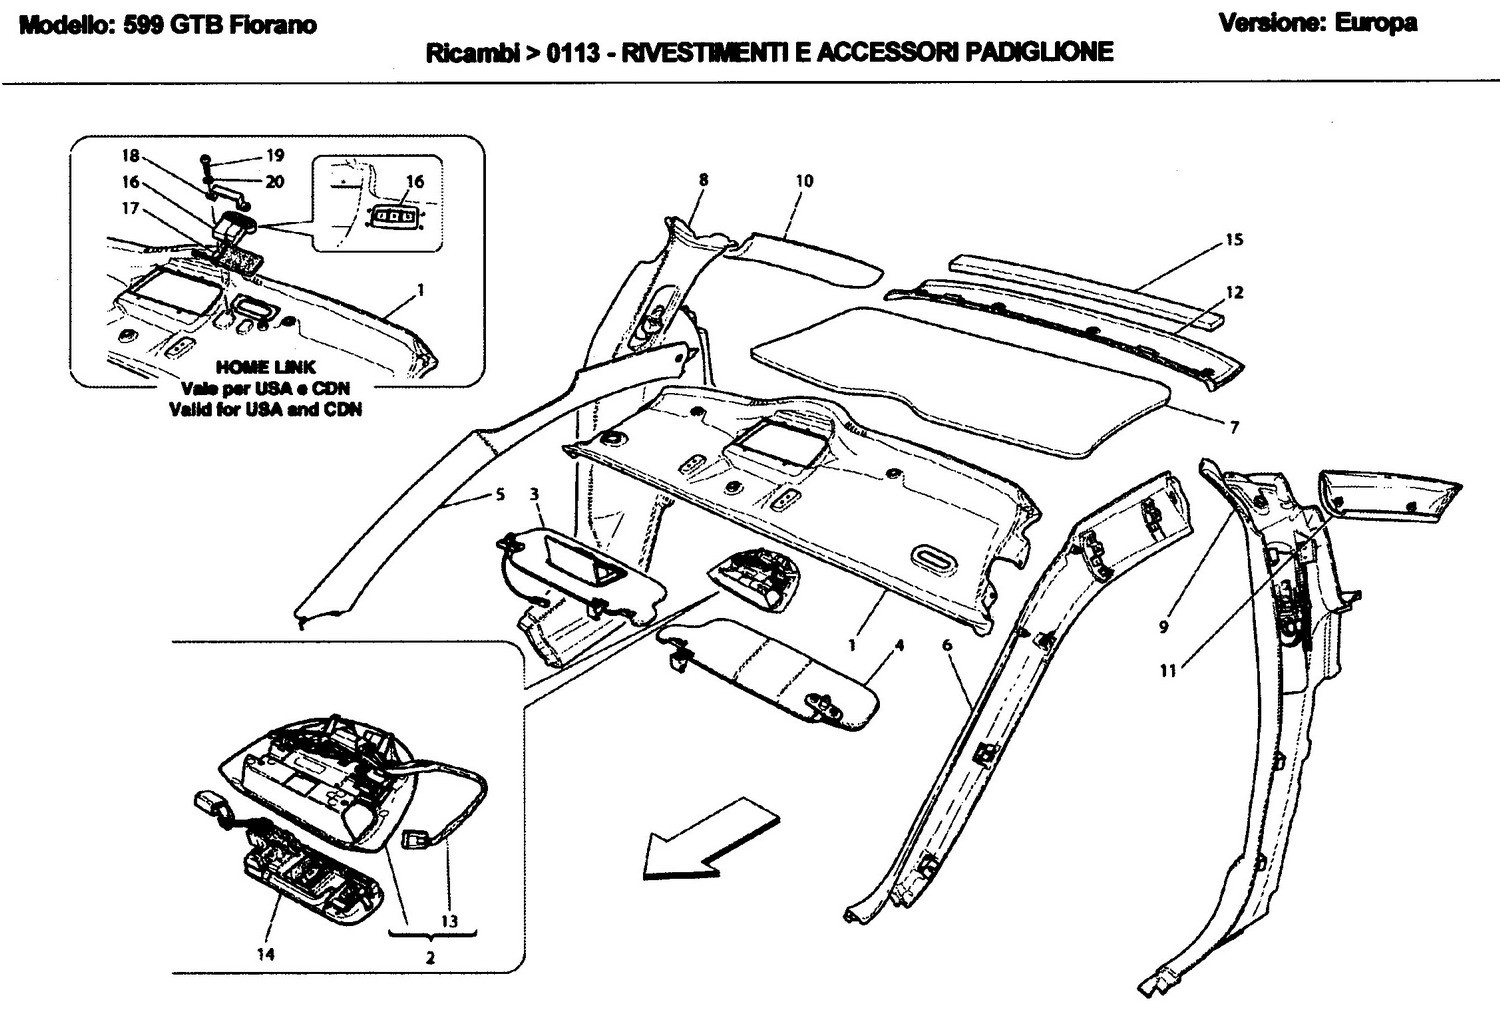 ROOF PANEL UPHOLSTERY AND ACCESSORIES